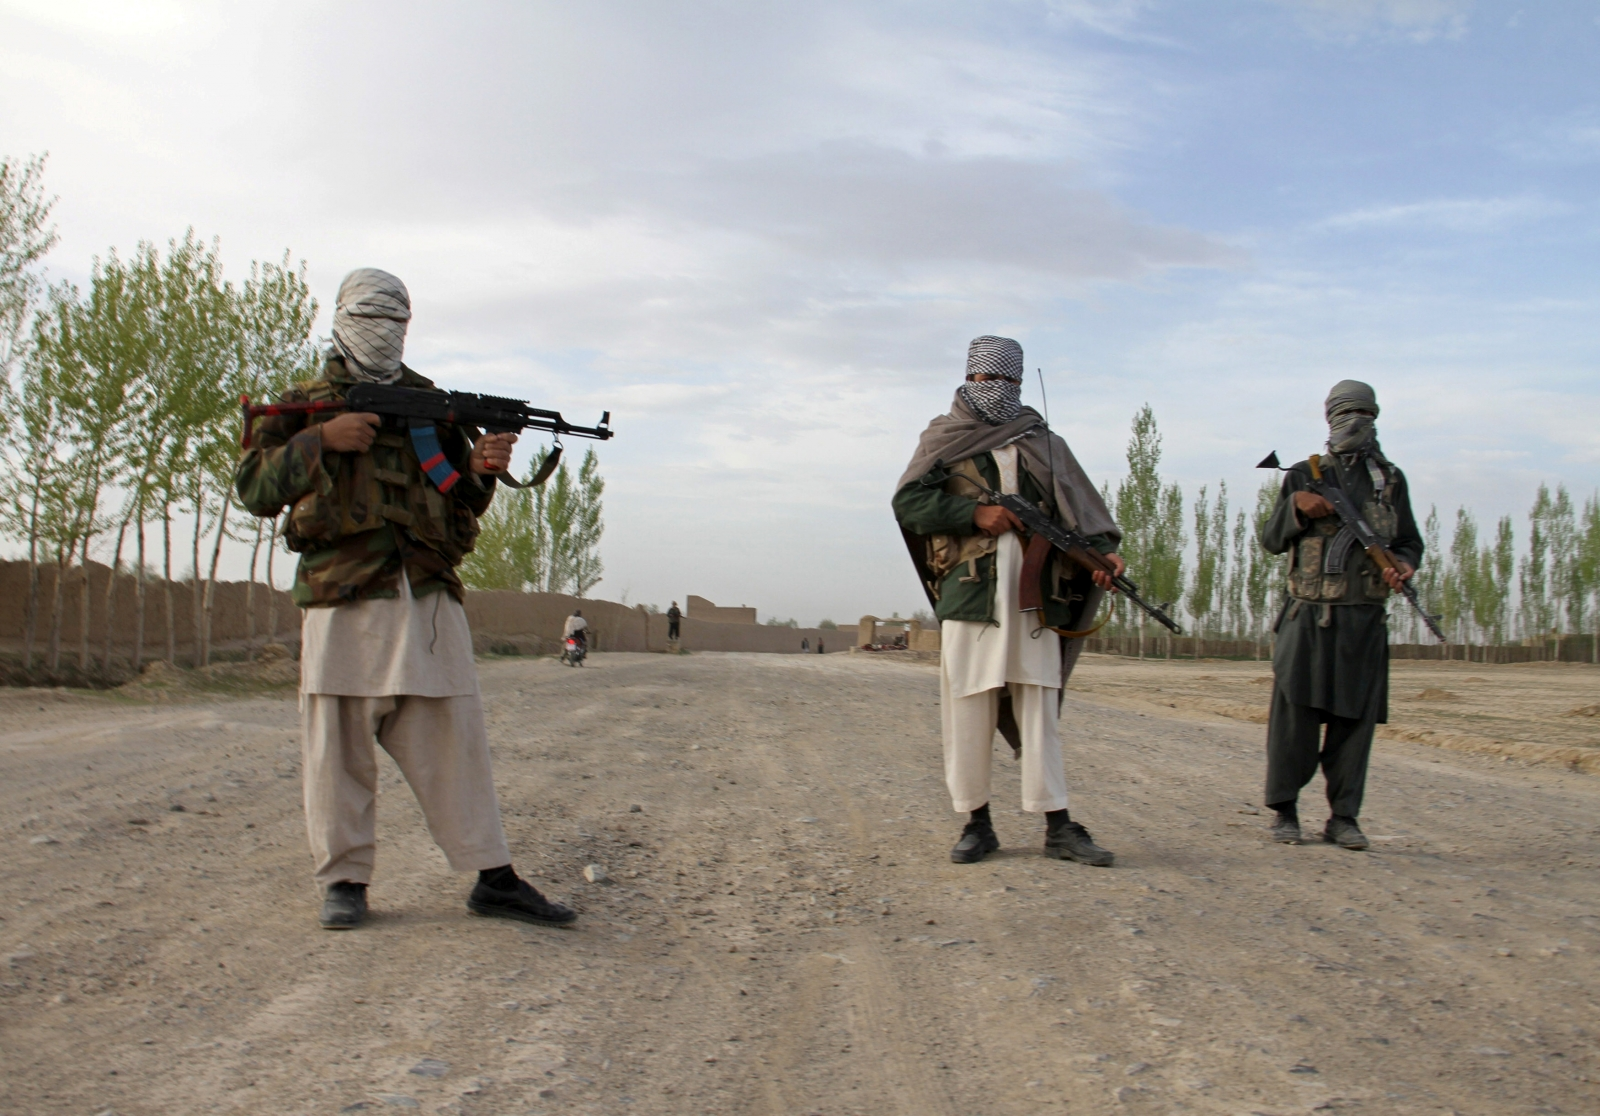 Gunmen attack house of Afghan member of parliament